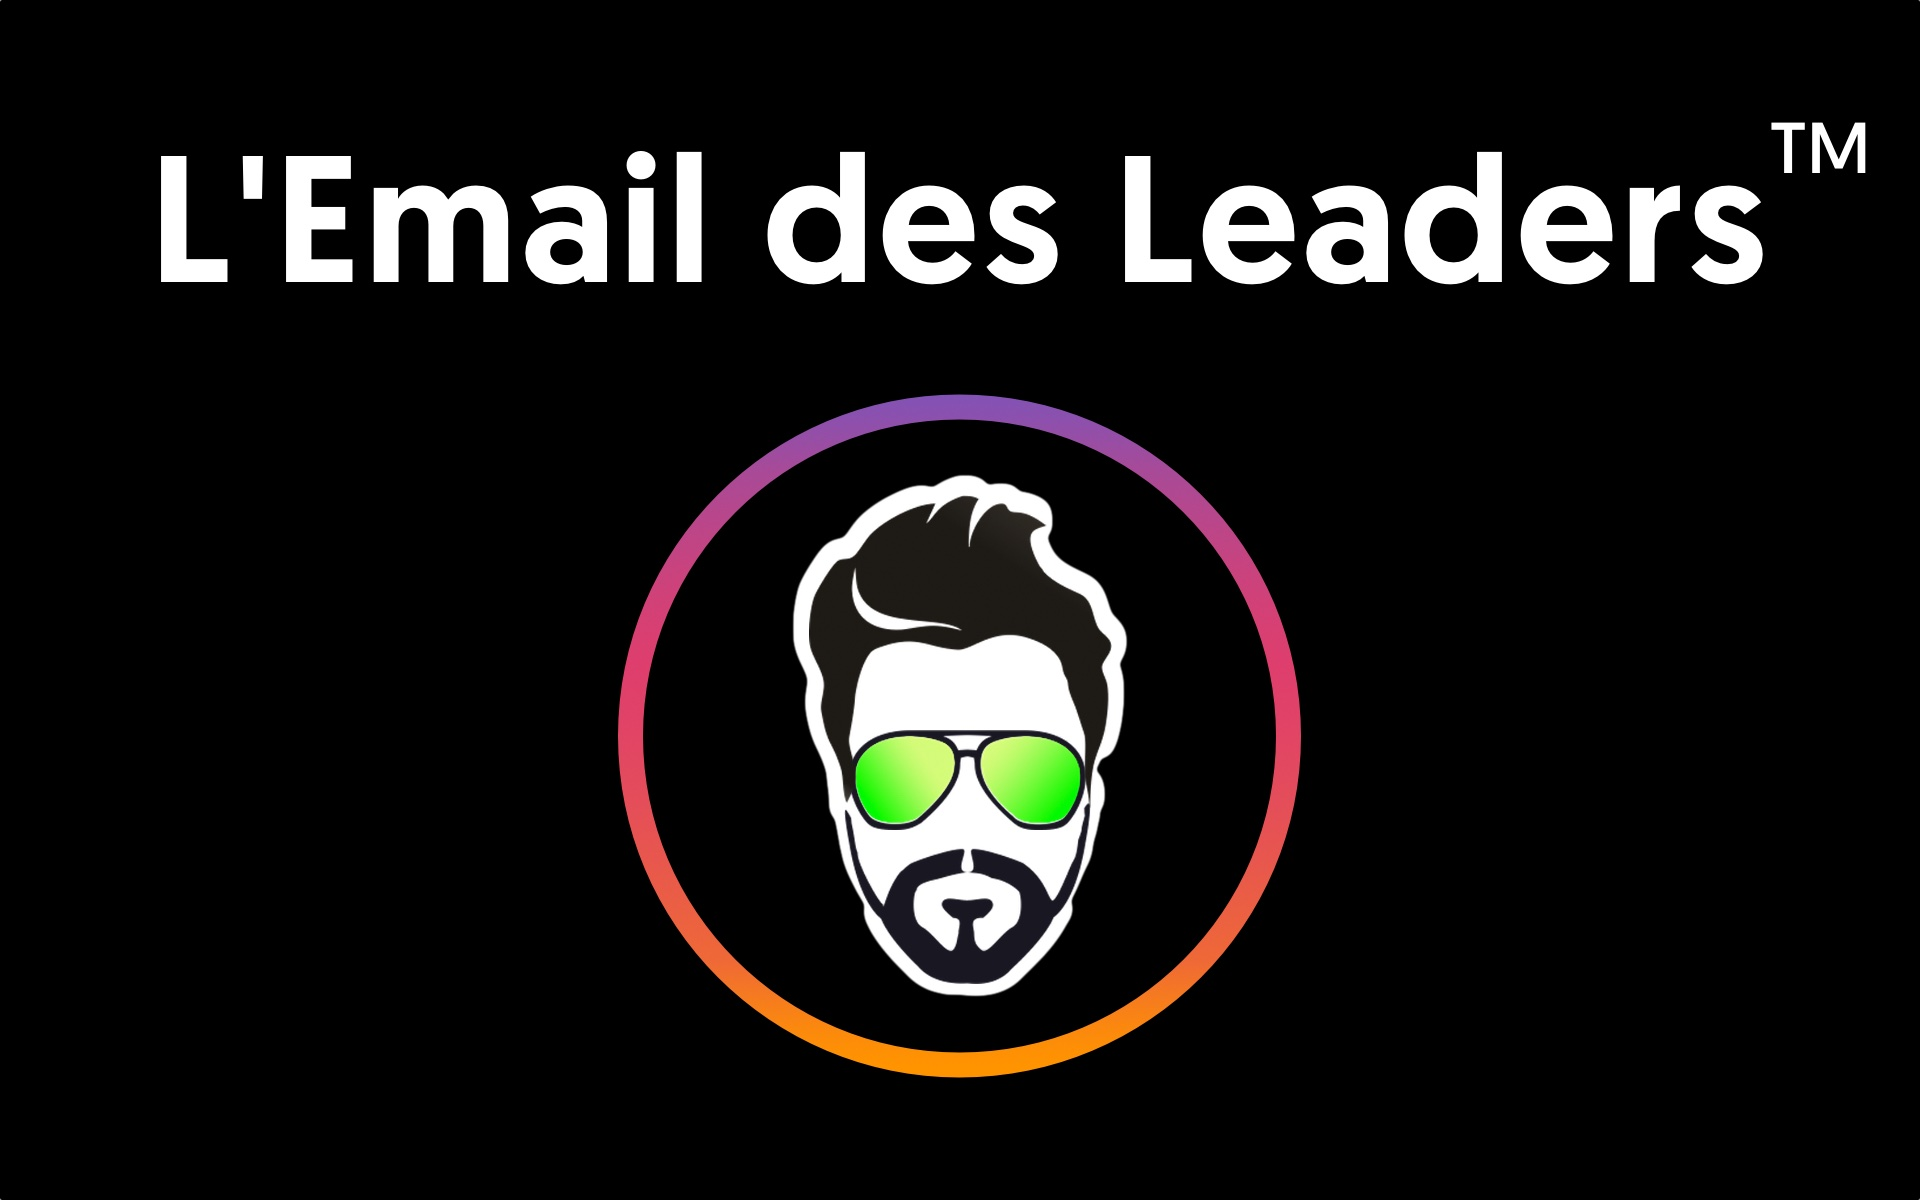 Le mail des Leaders 2020